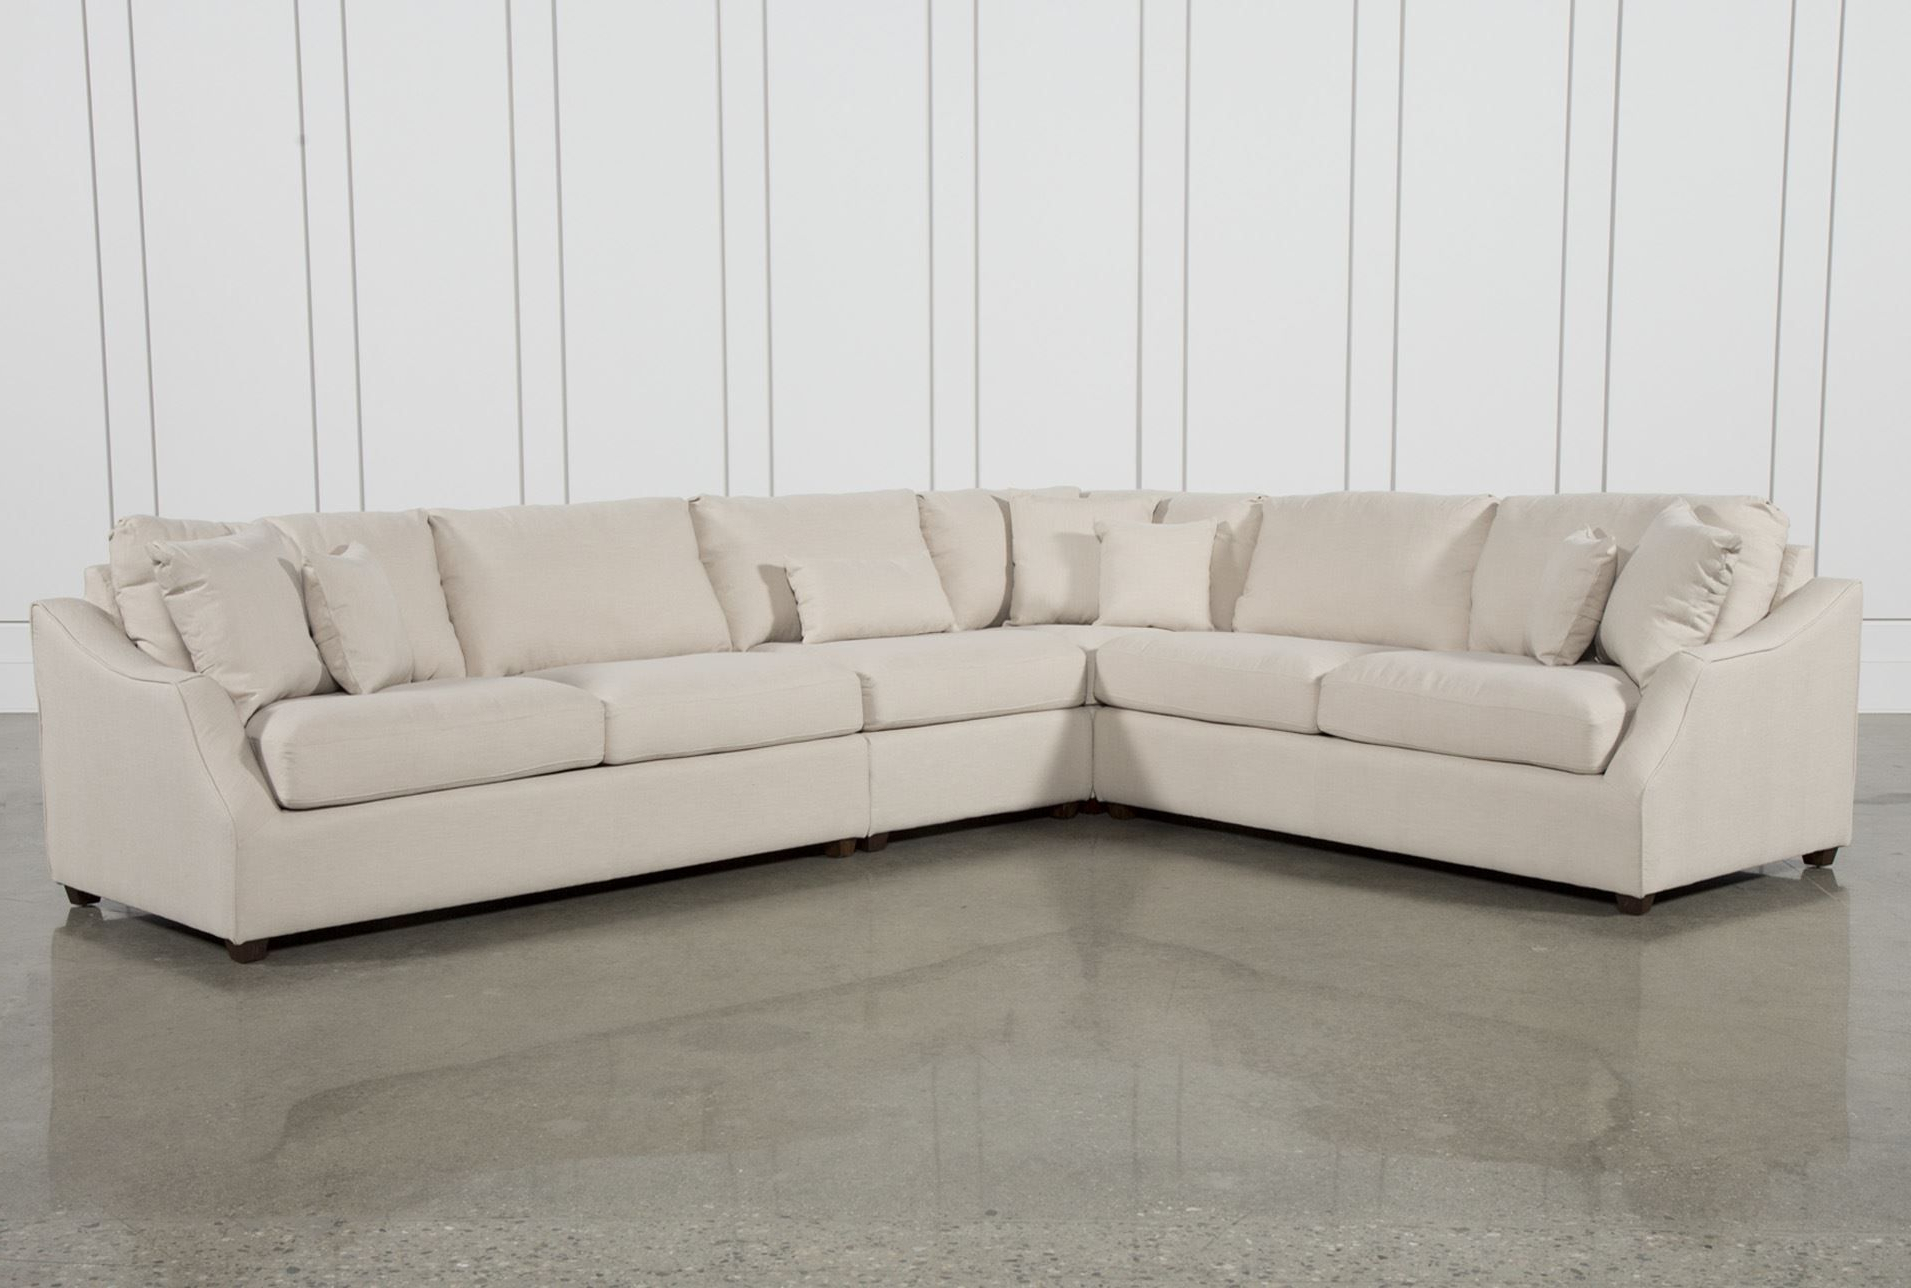 Widely Used Harper Down 3 Piece Sectionals Throughout Magnolia Home Homestead 4 Piece Sectionaljoanna Gaines (View 7 of 20)